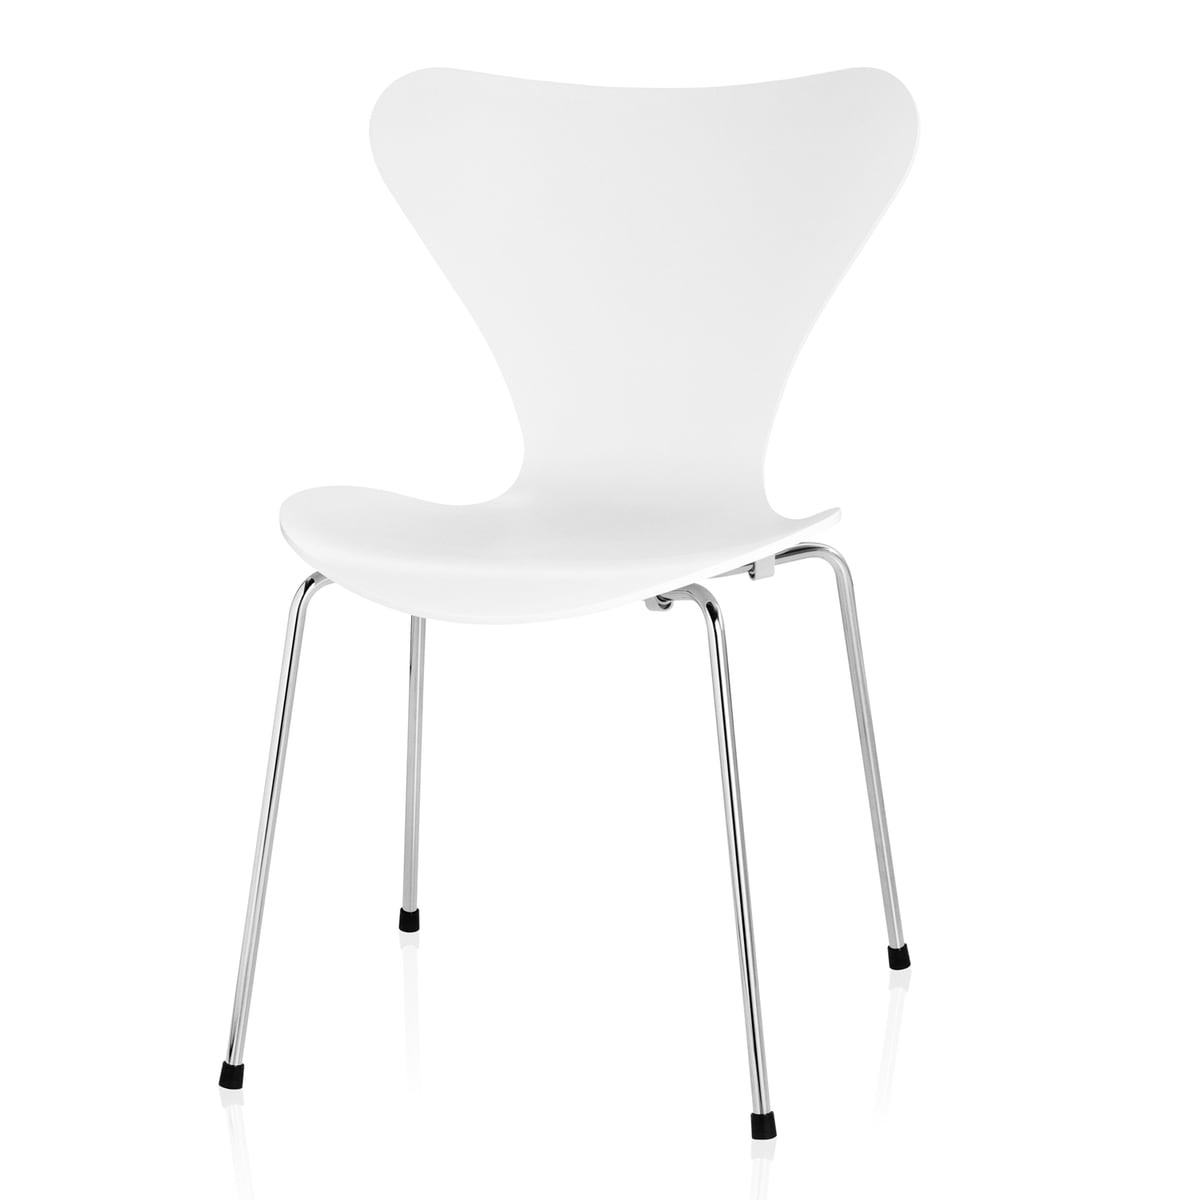 series 7 chair by fritz hansen in the shop. Black Bedroom Furniture Sets. Home Design Ideas